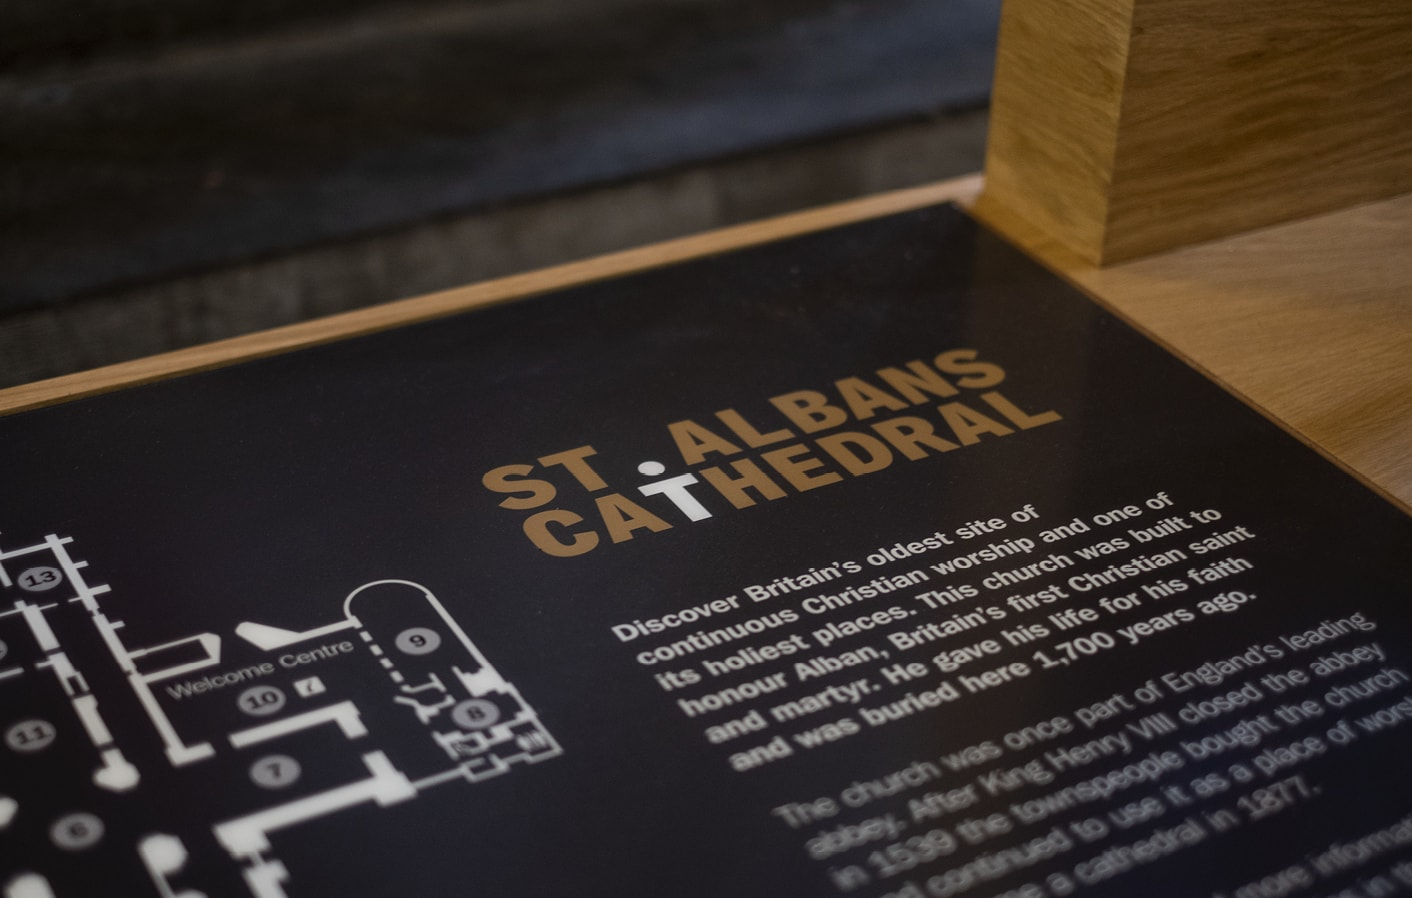 St Albans Cathedral interpretation signage